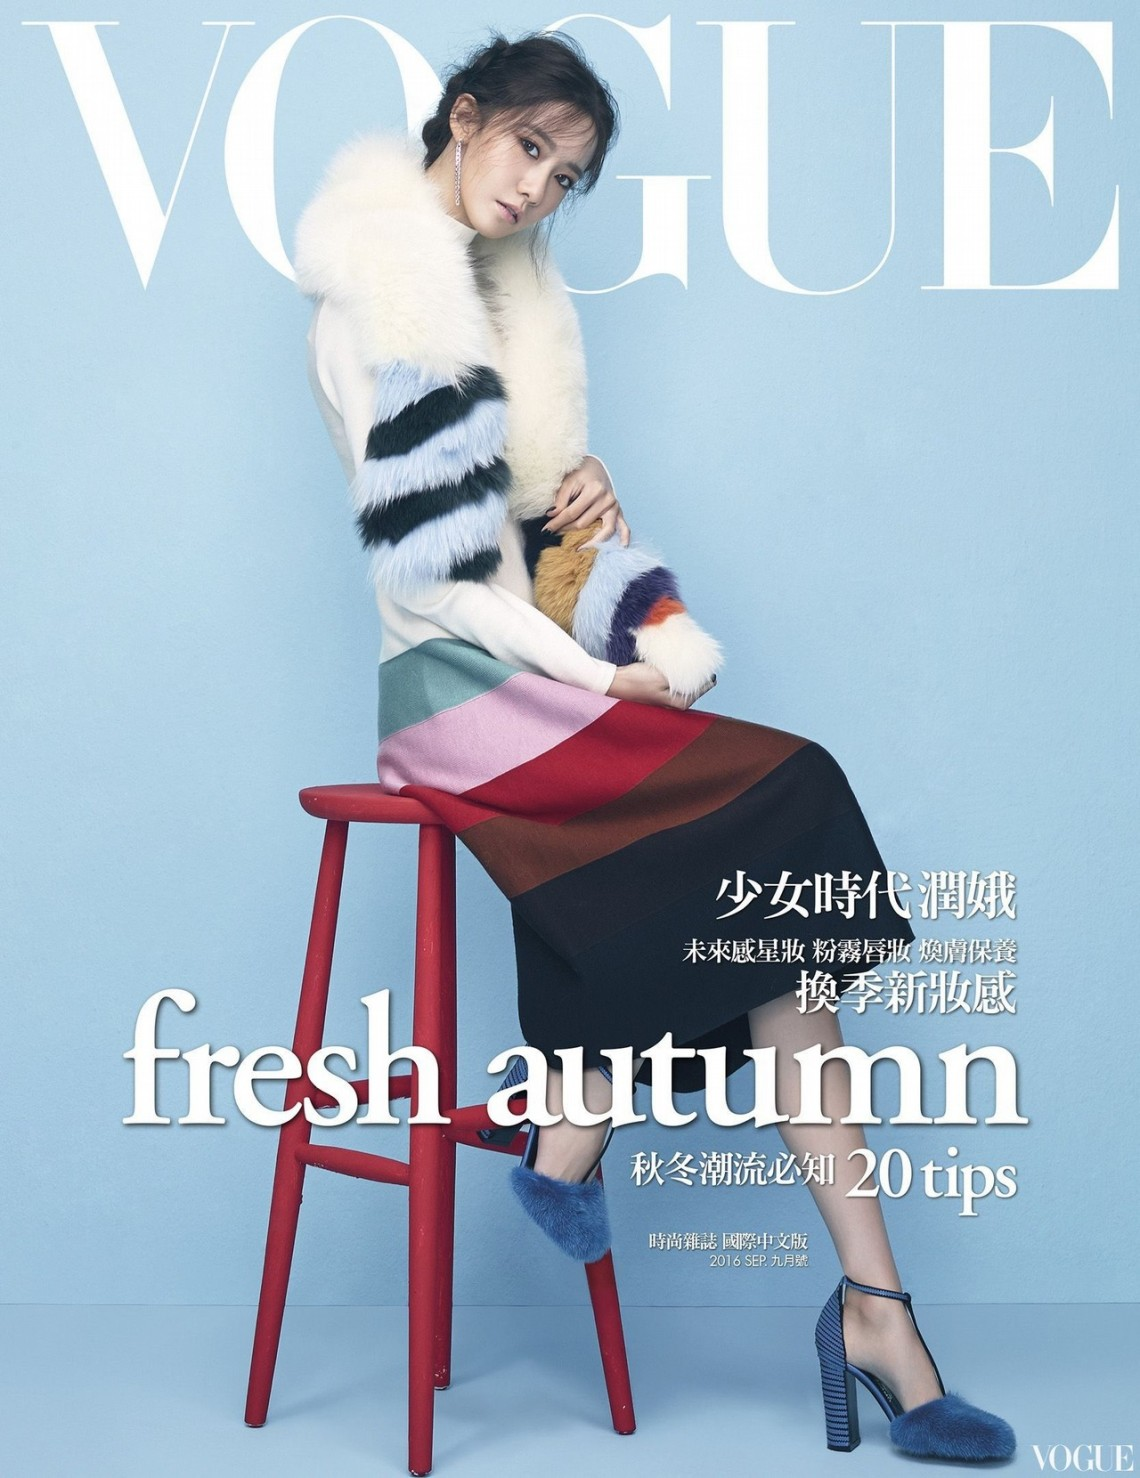 Yoona for Vogue Taiwan 04 Drama Chronicles